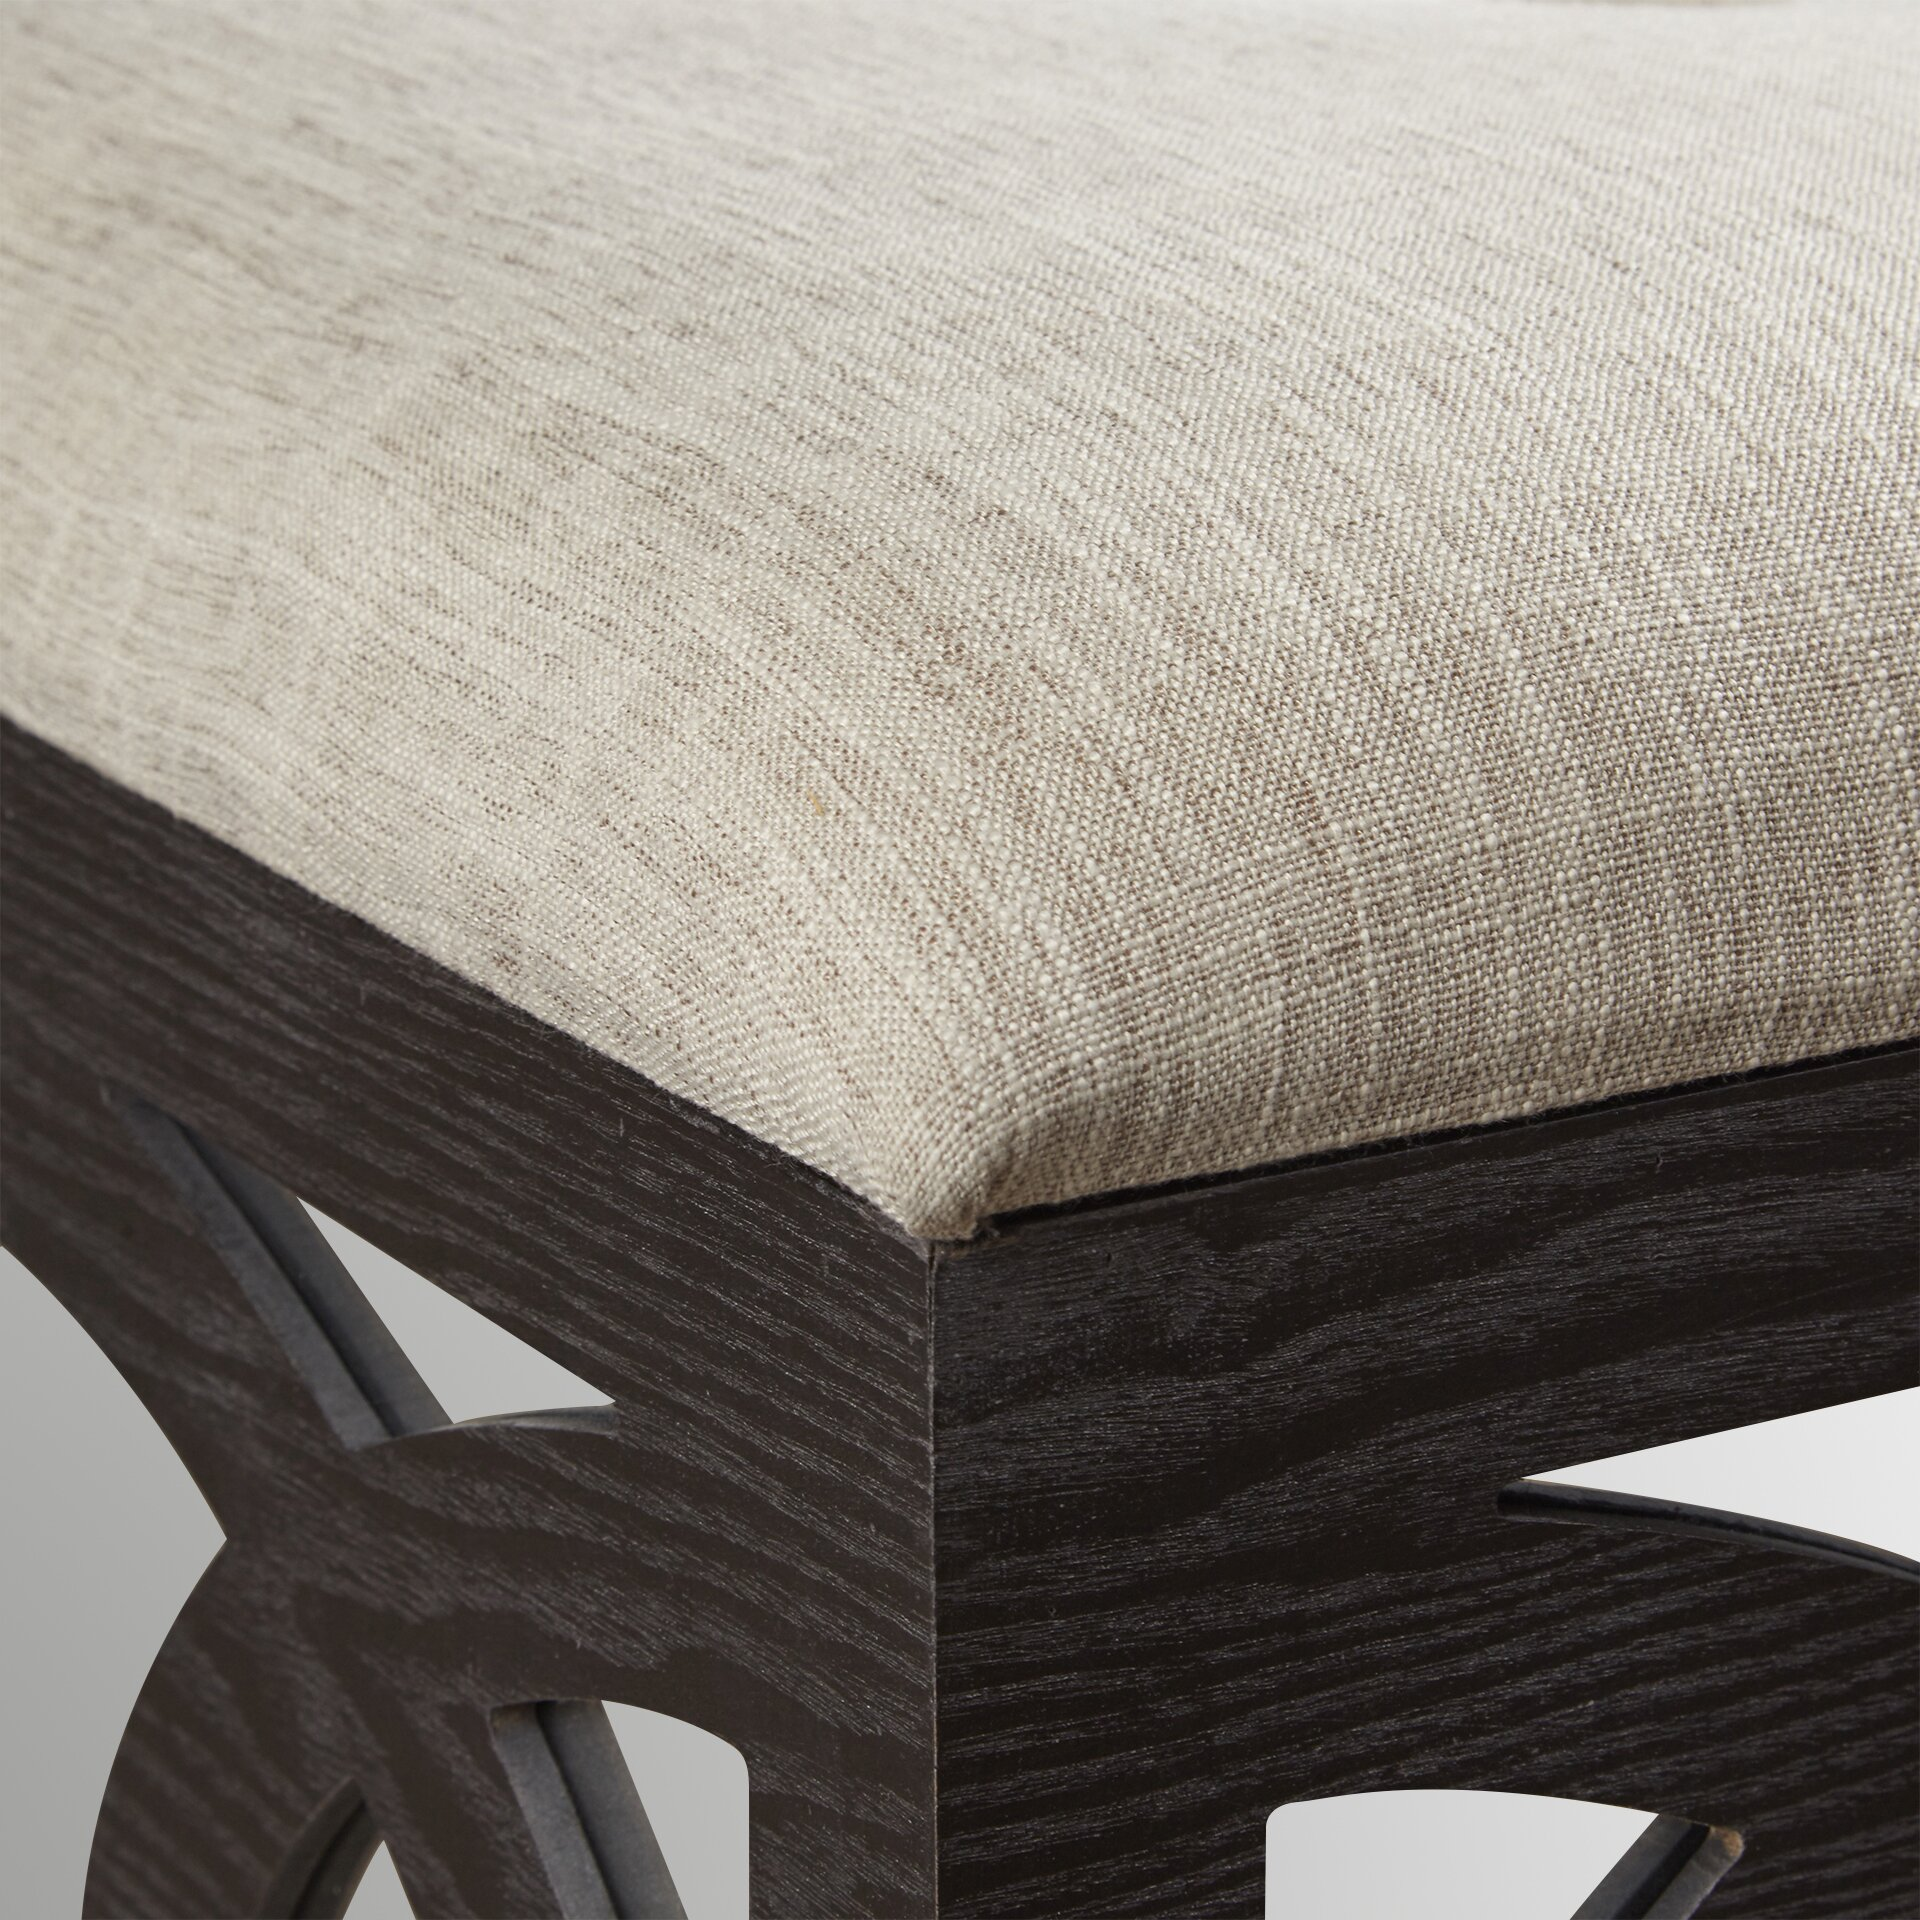 Coffee table with nesting ottomans - Yarm Mirrored Square Nesting Ottoman